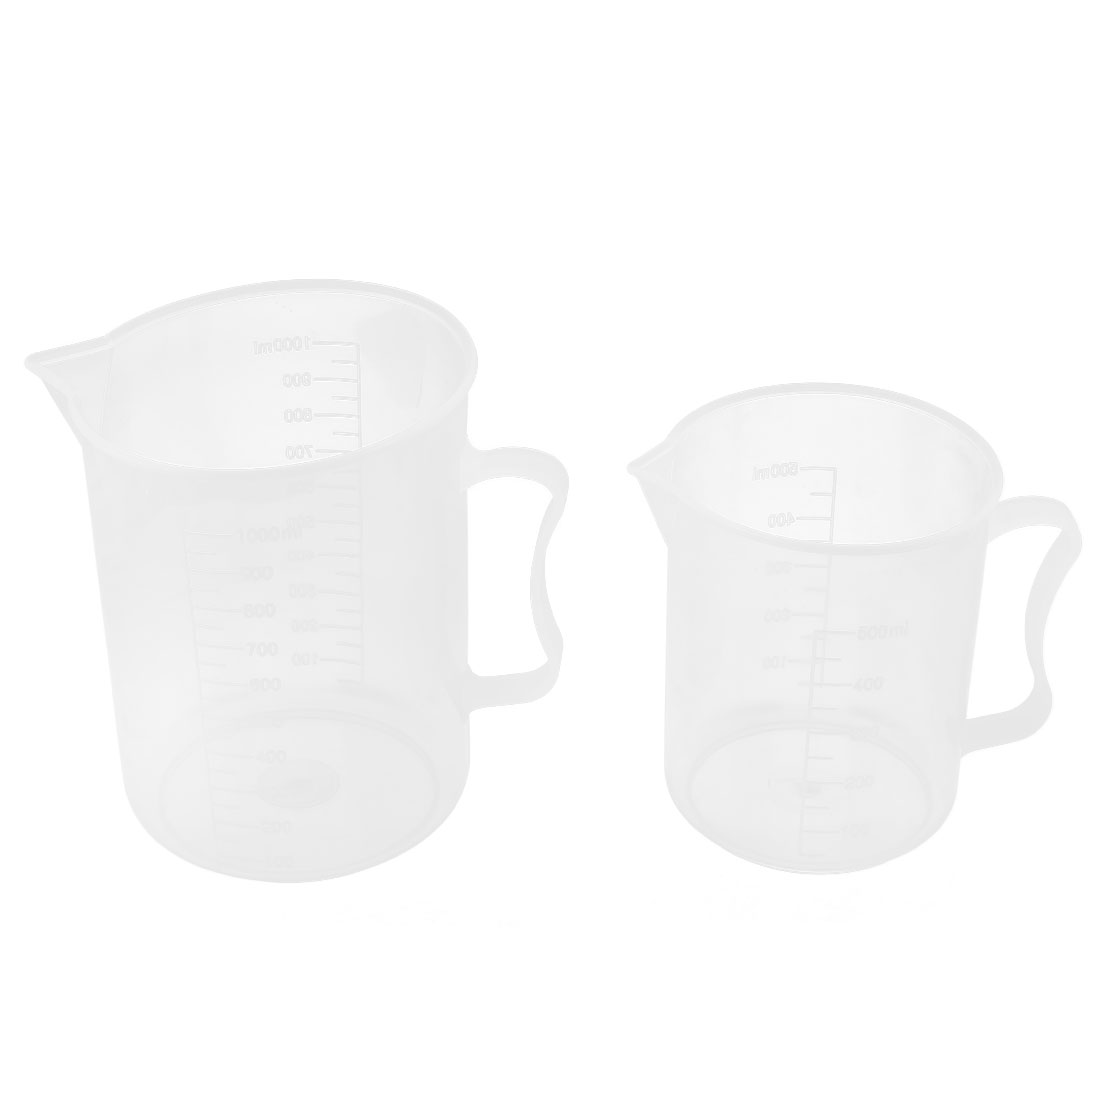 2 in 1 Plastic Lab Experiment Liquid Testing Measuring Beaker Cup 500mL/1000mL